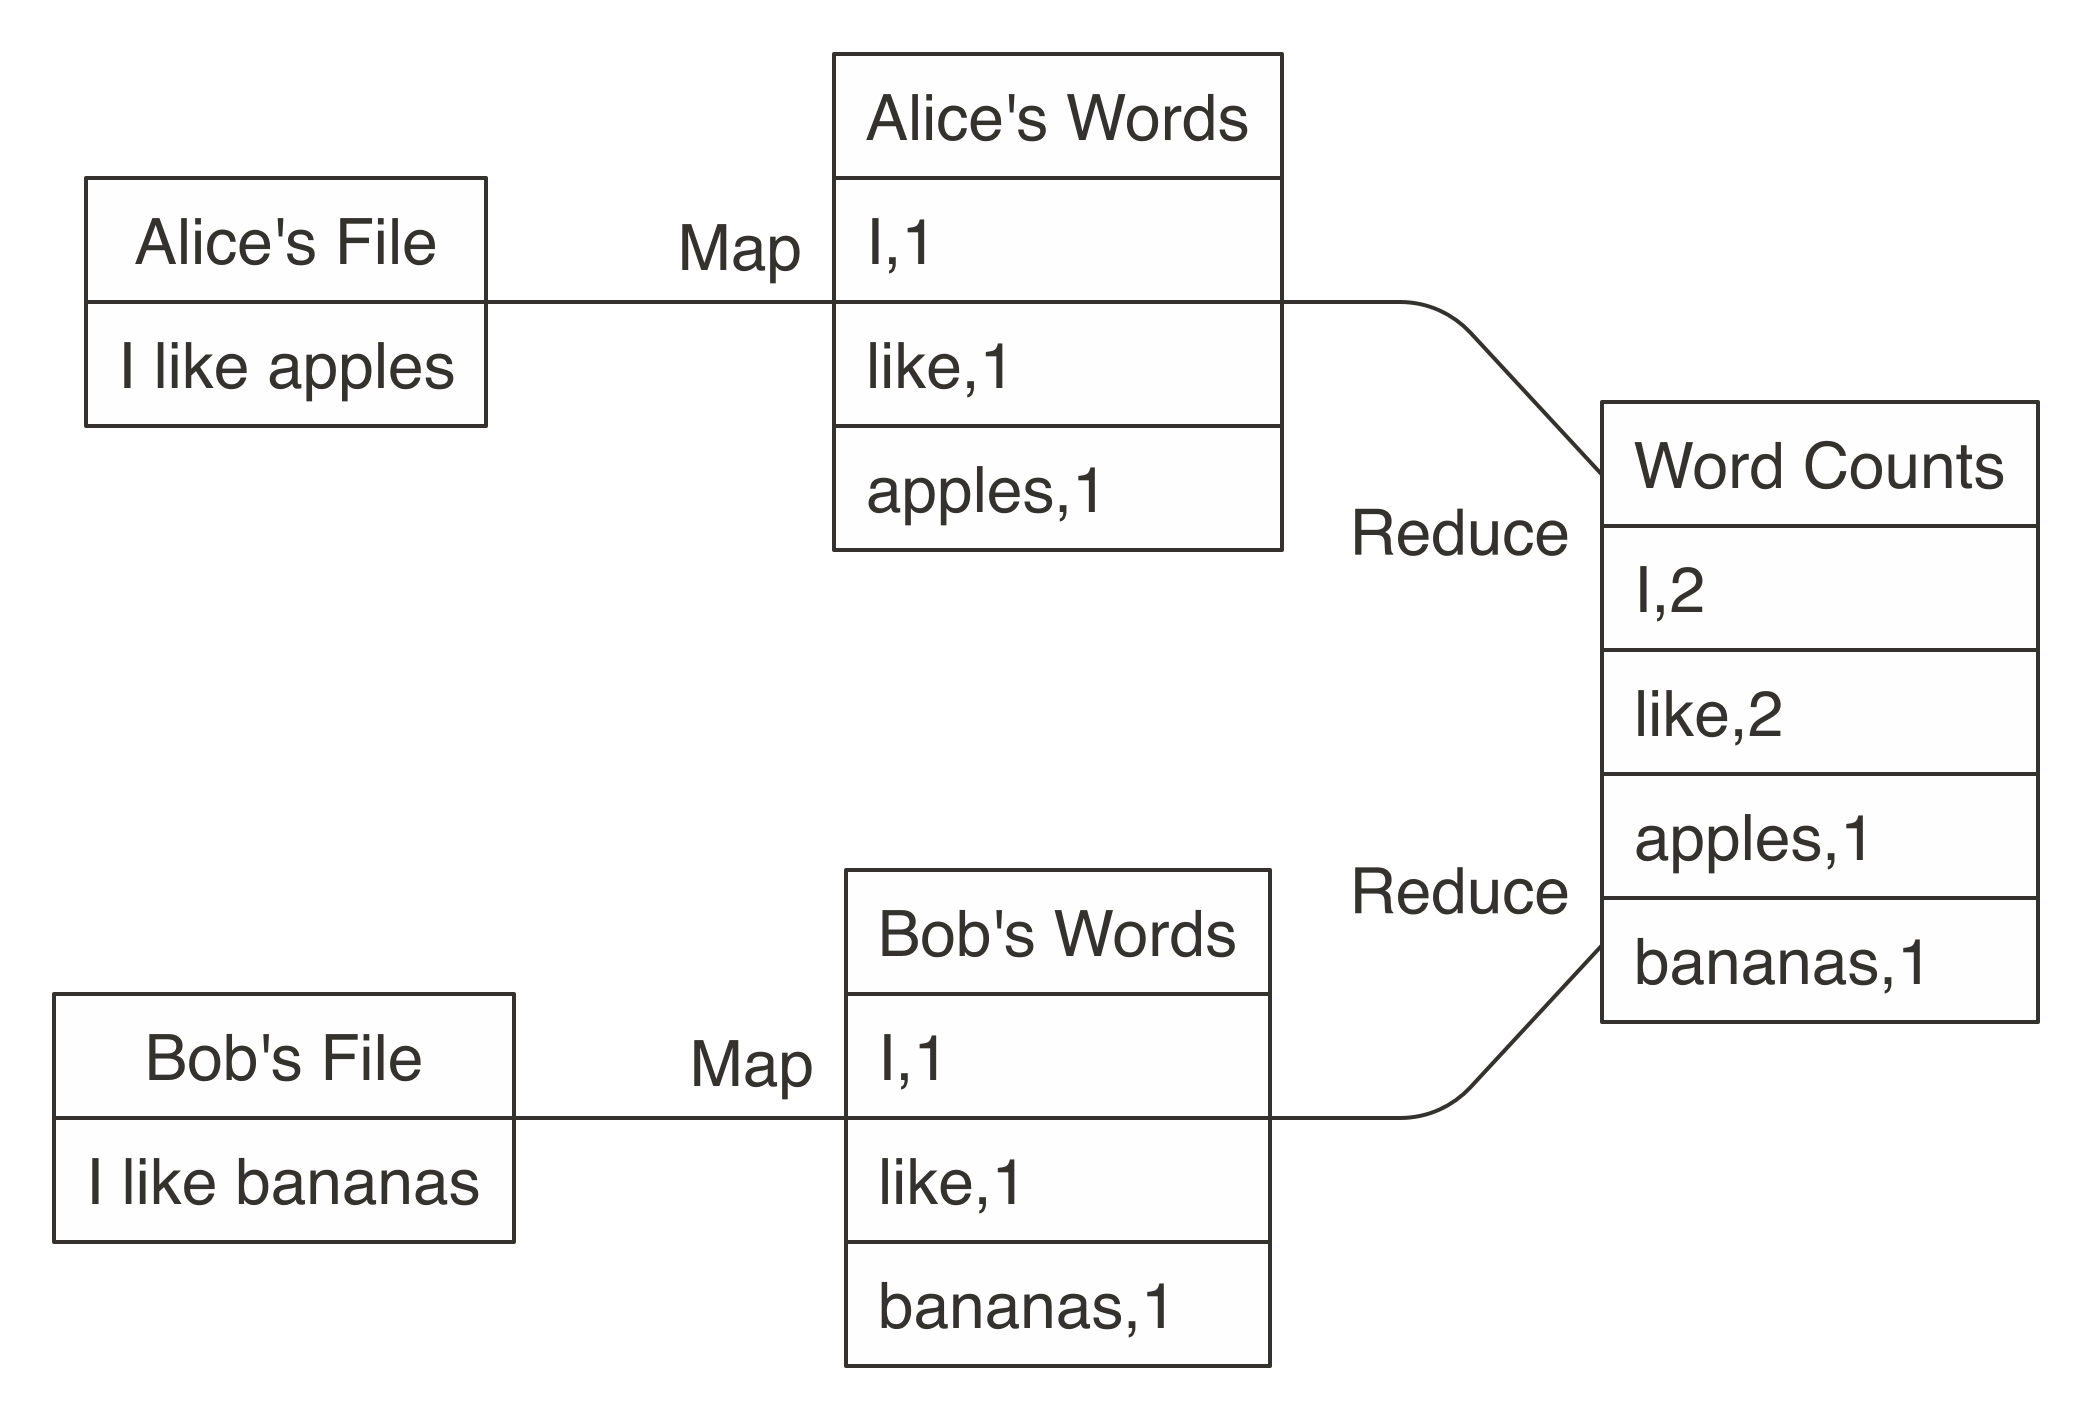 MapReduce example counting words across files